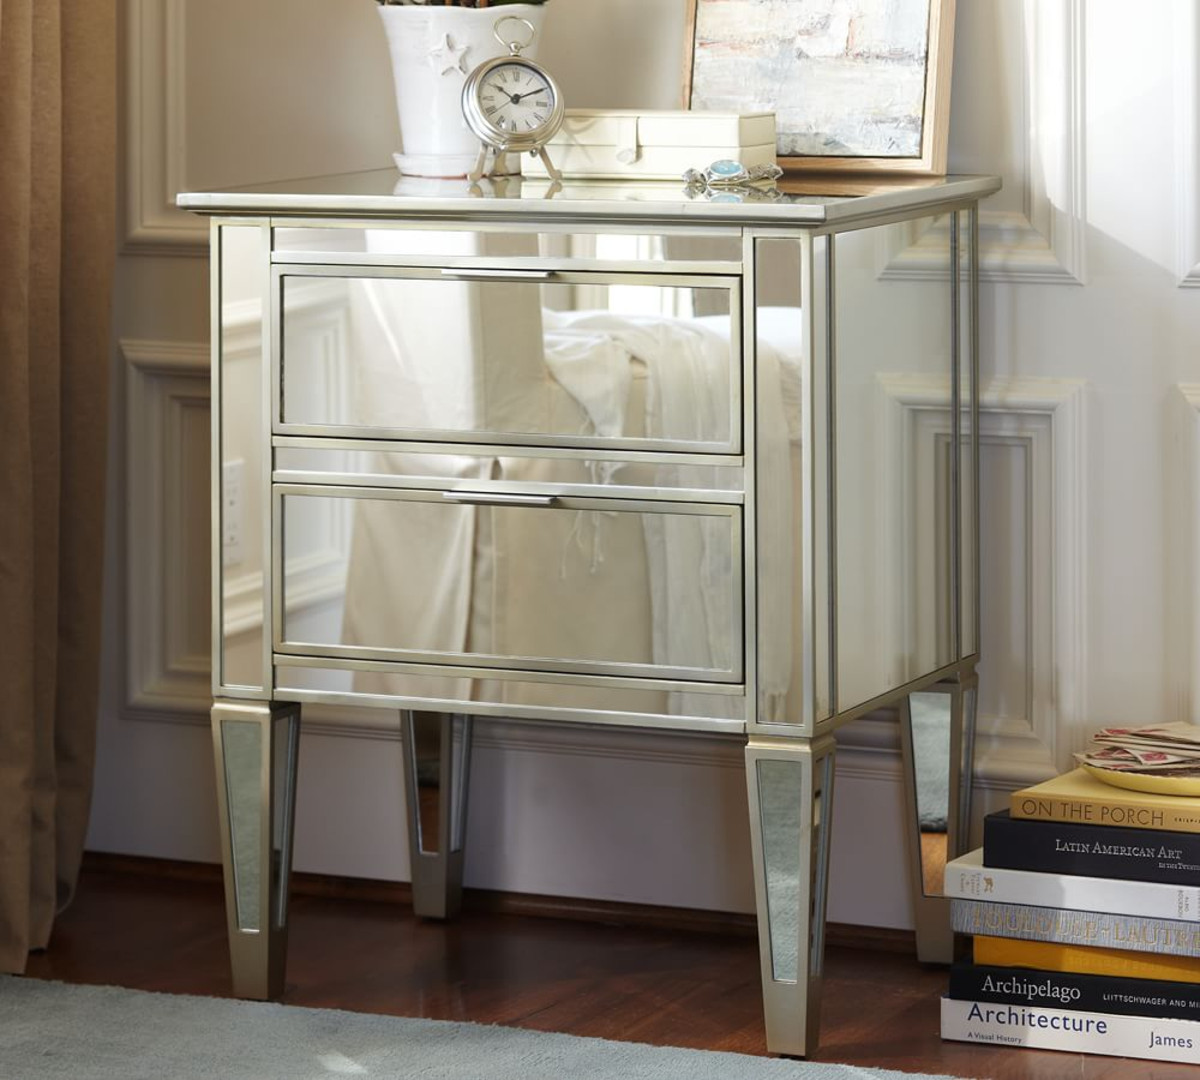 Silver Mirror Side Table Ikea Royals Courage Ornamental Merchandise Mirrored Bedside Table,Layout For Small Living Room With Fireplace